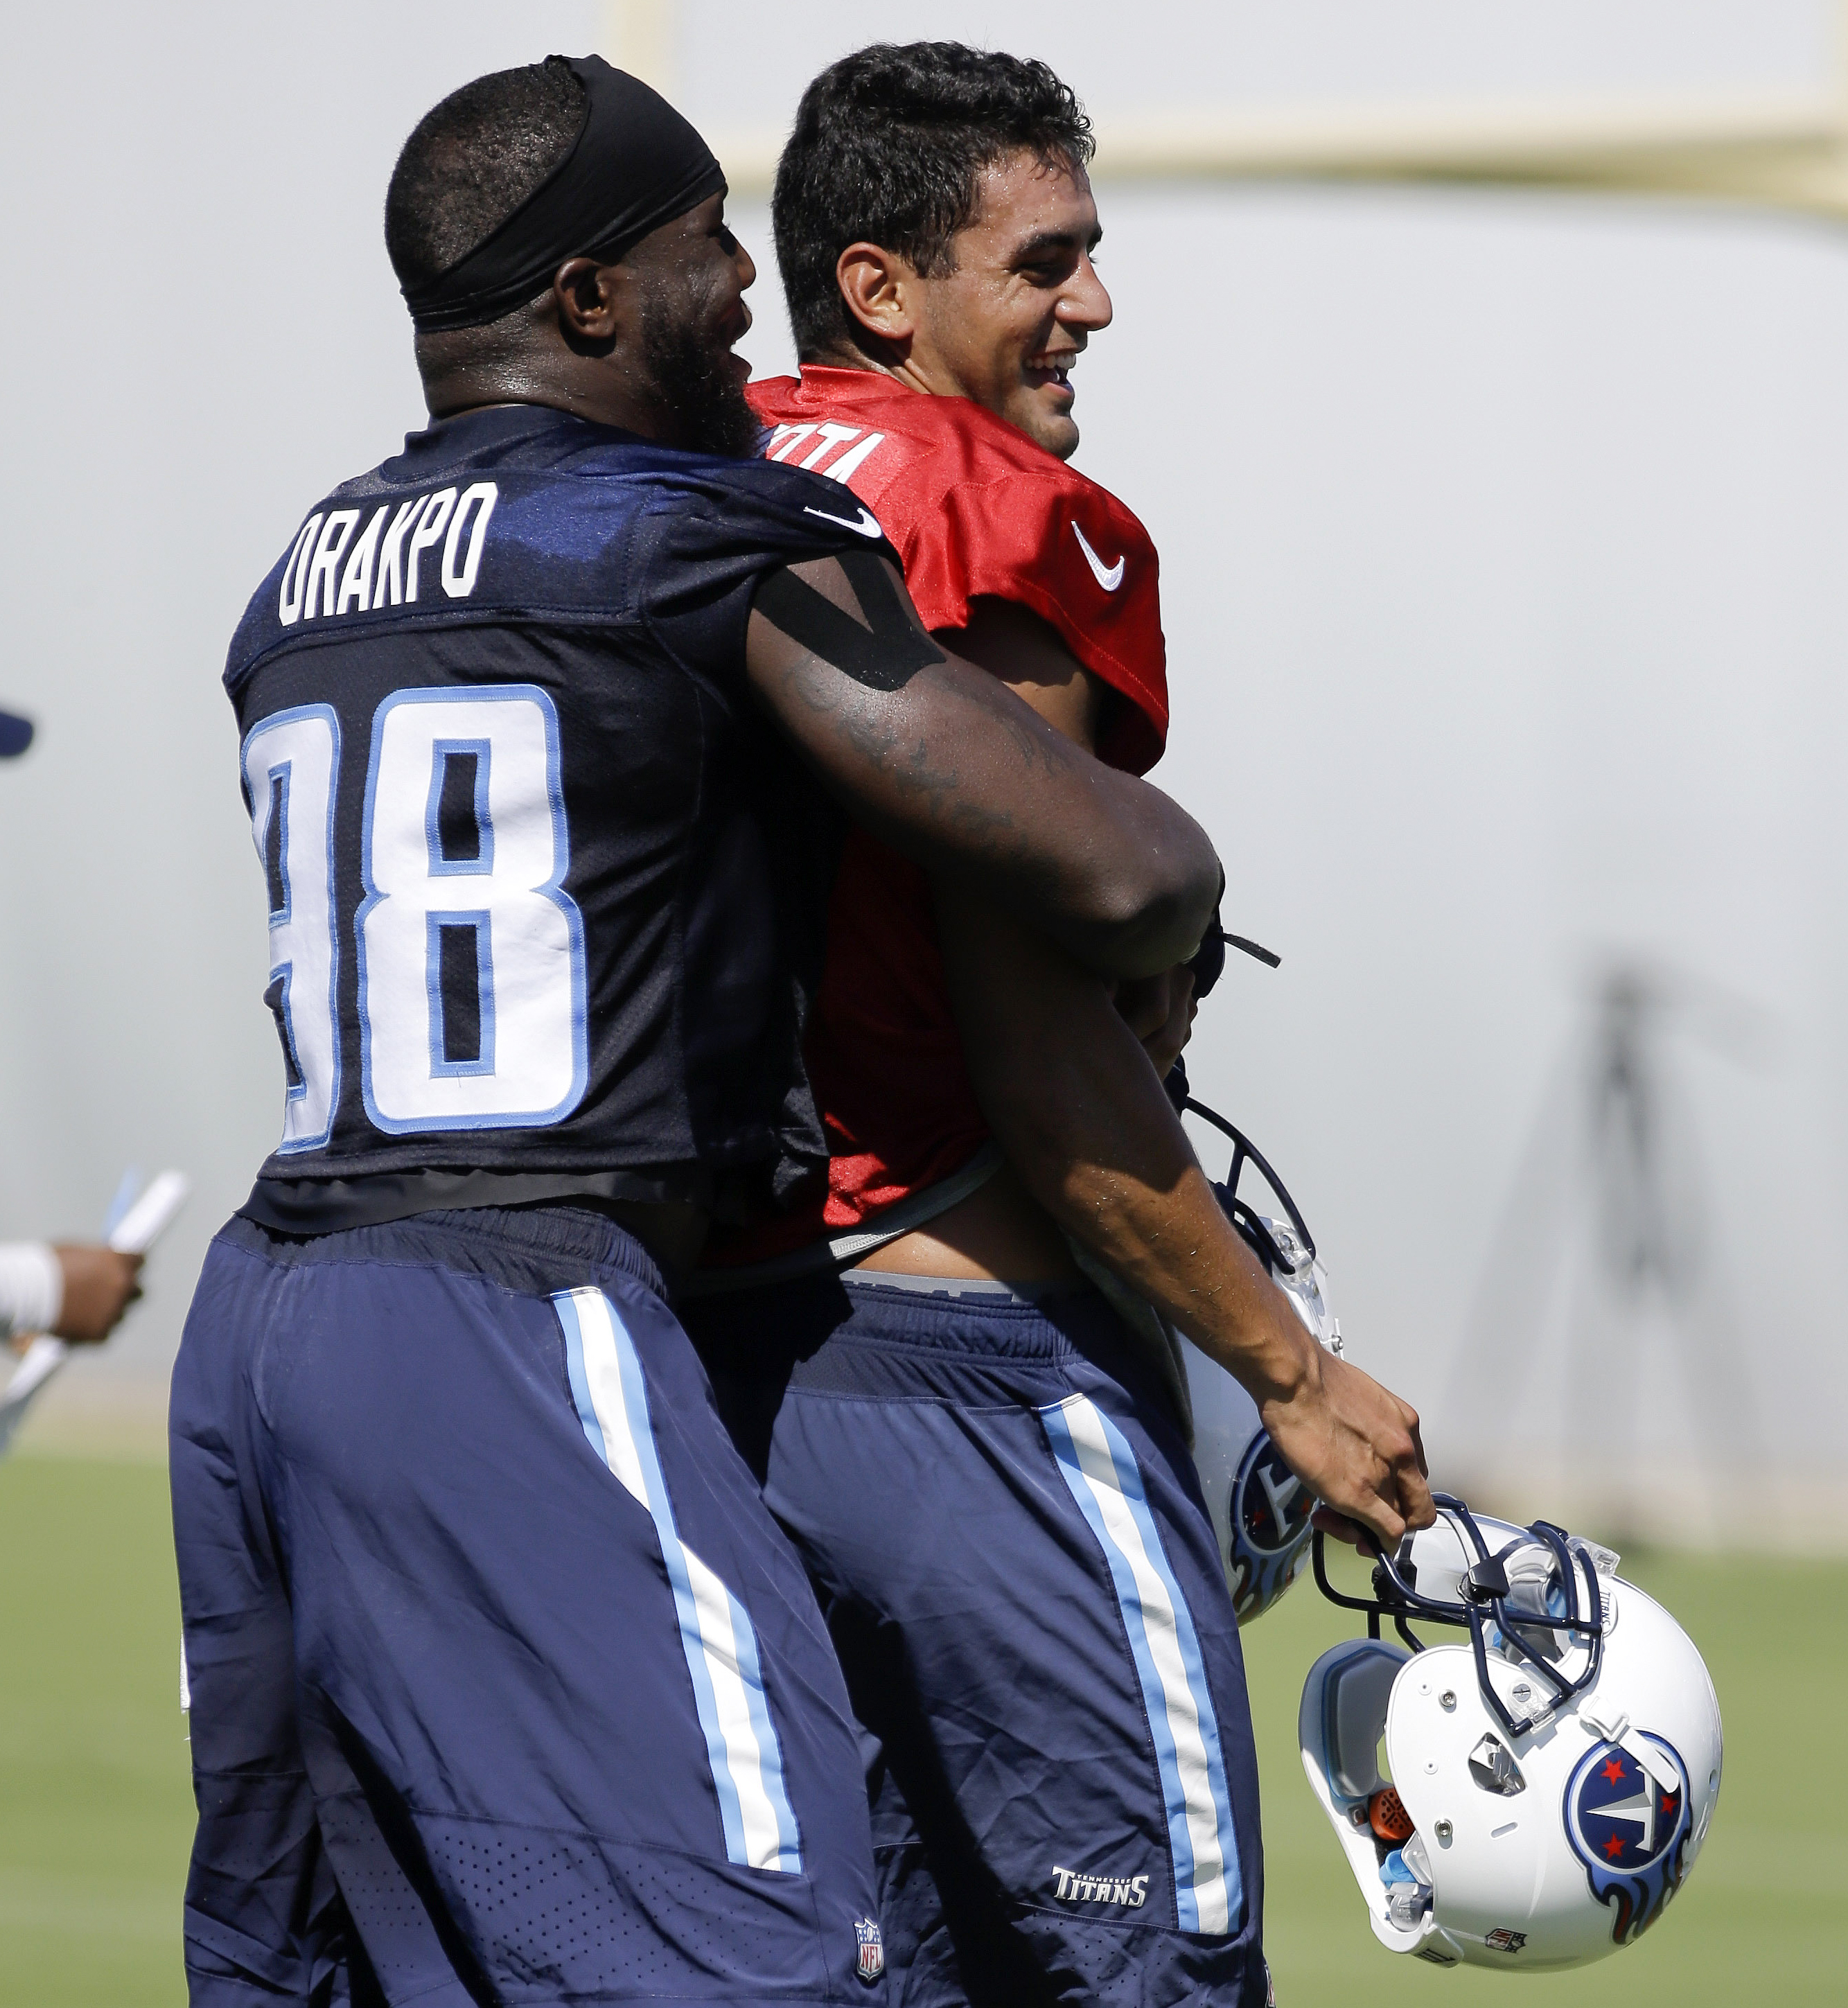 FILE - In this July 31, 2015, file photo, Tennessee Titans linebacker Brian Orakpo (98) hugs quarterback Marcus Mariota, right, during the first day of NFL football training camp in Nashville, Tenn. Titans linebacker Brian Orakpo is a teammate of Heisman